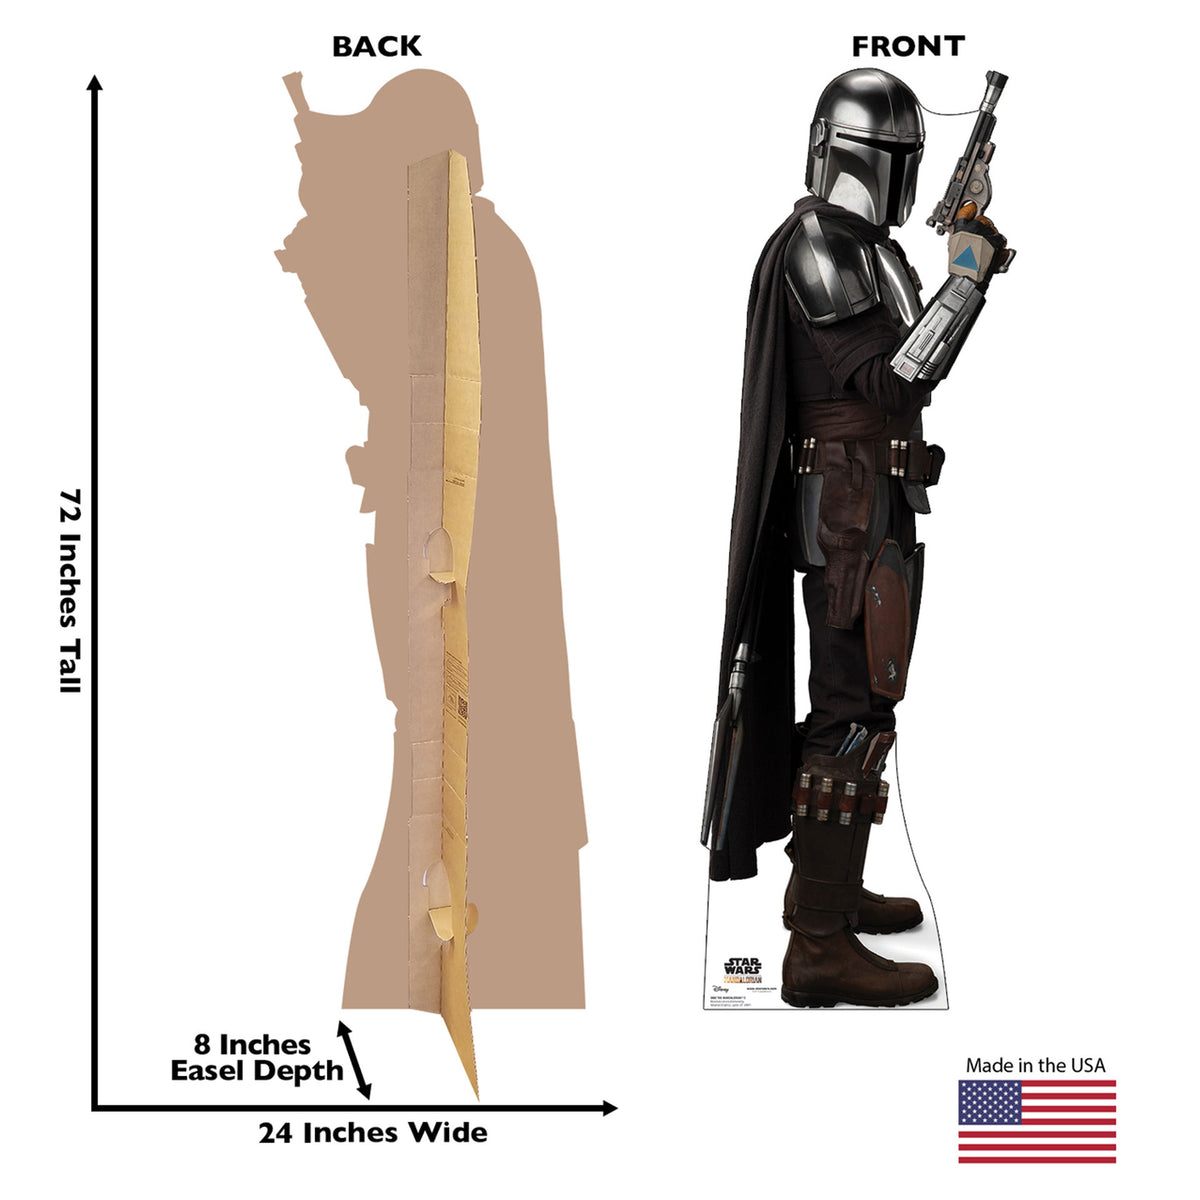 Star Wars: The Mandalorian 2 Standee